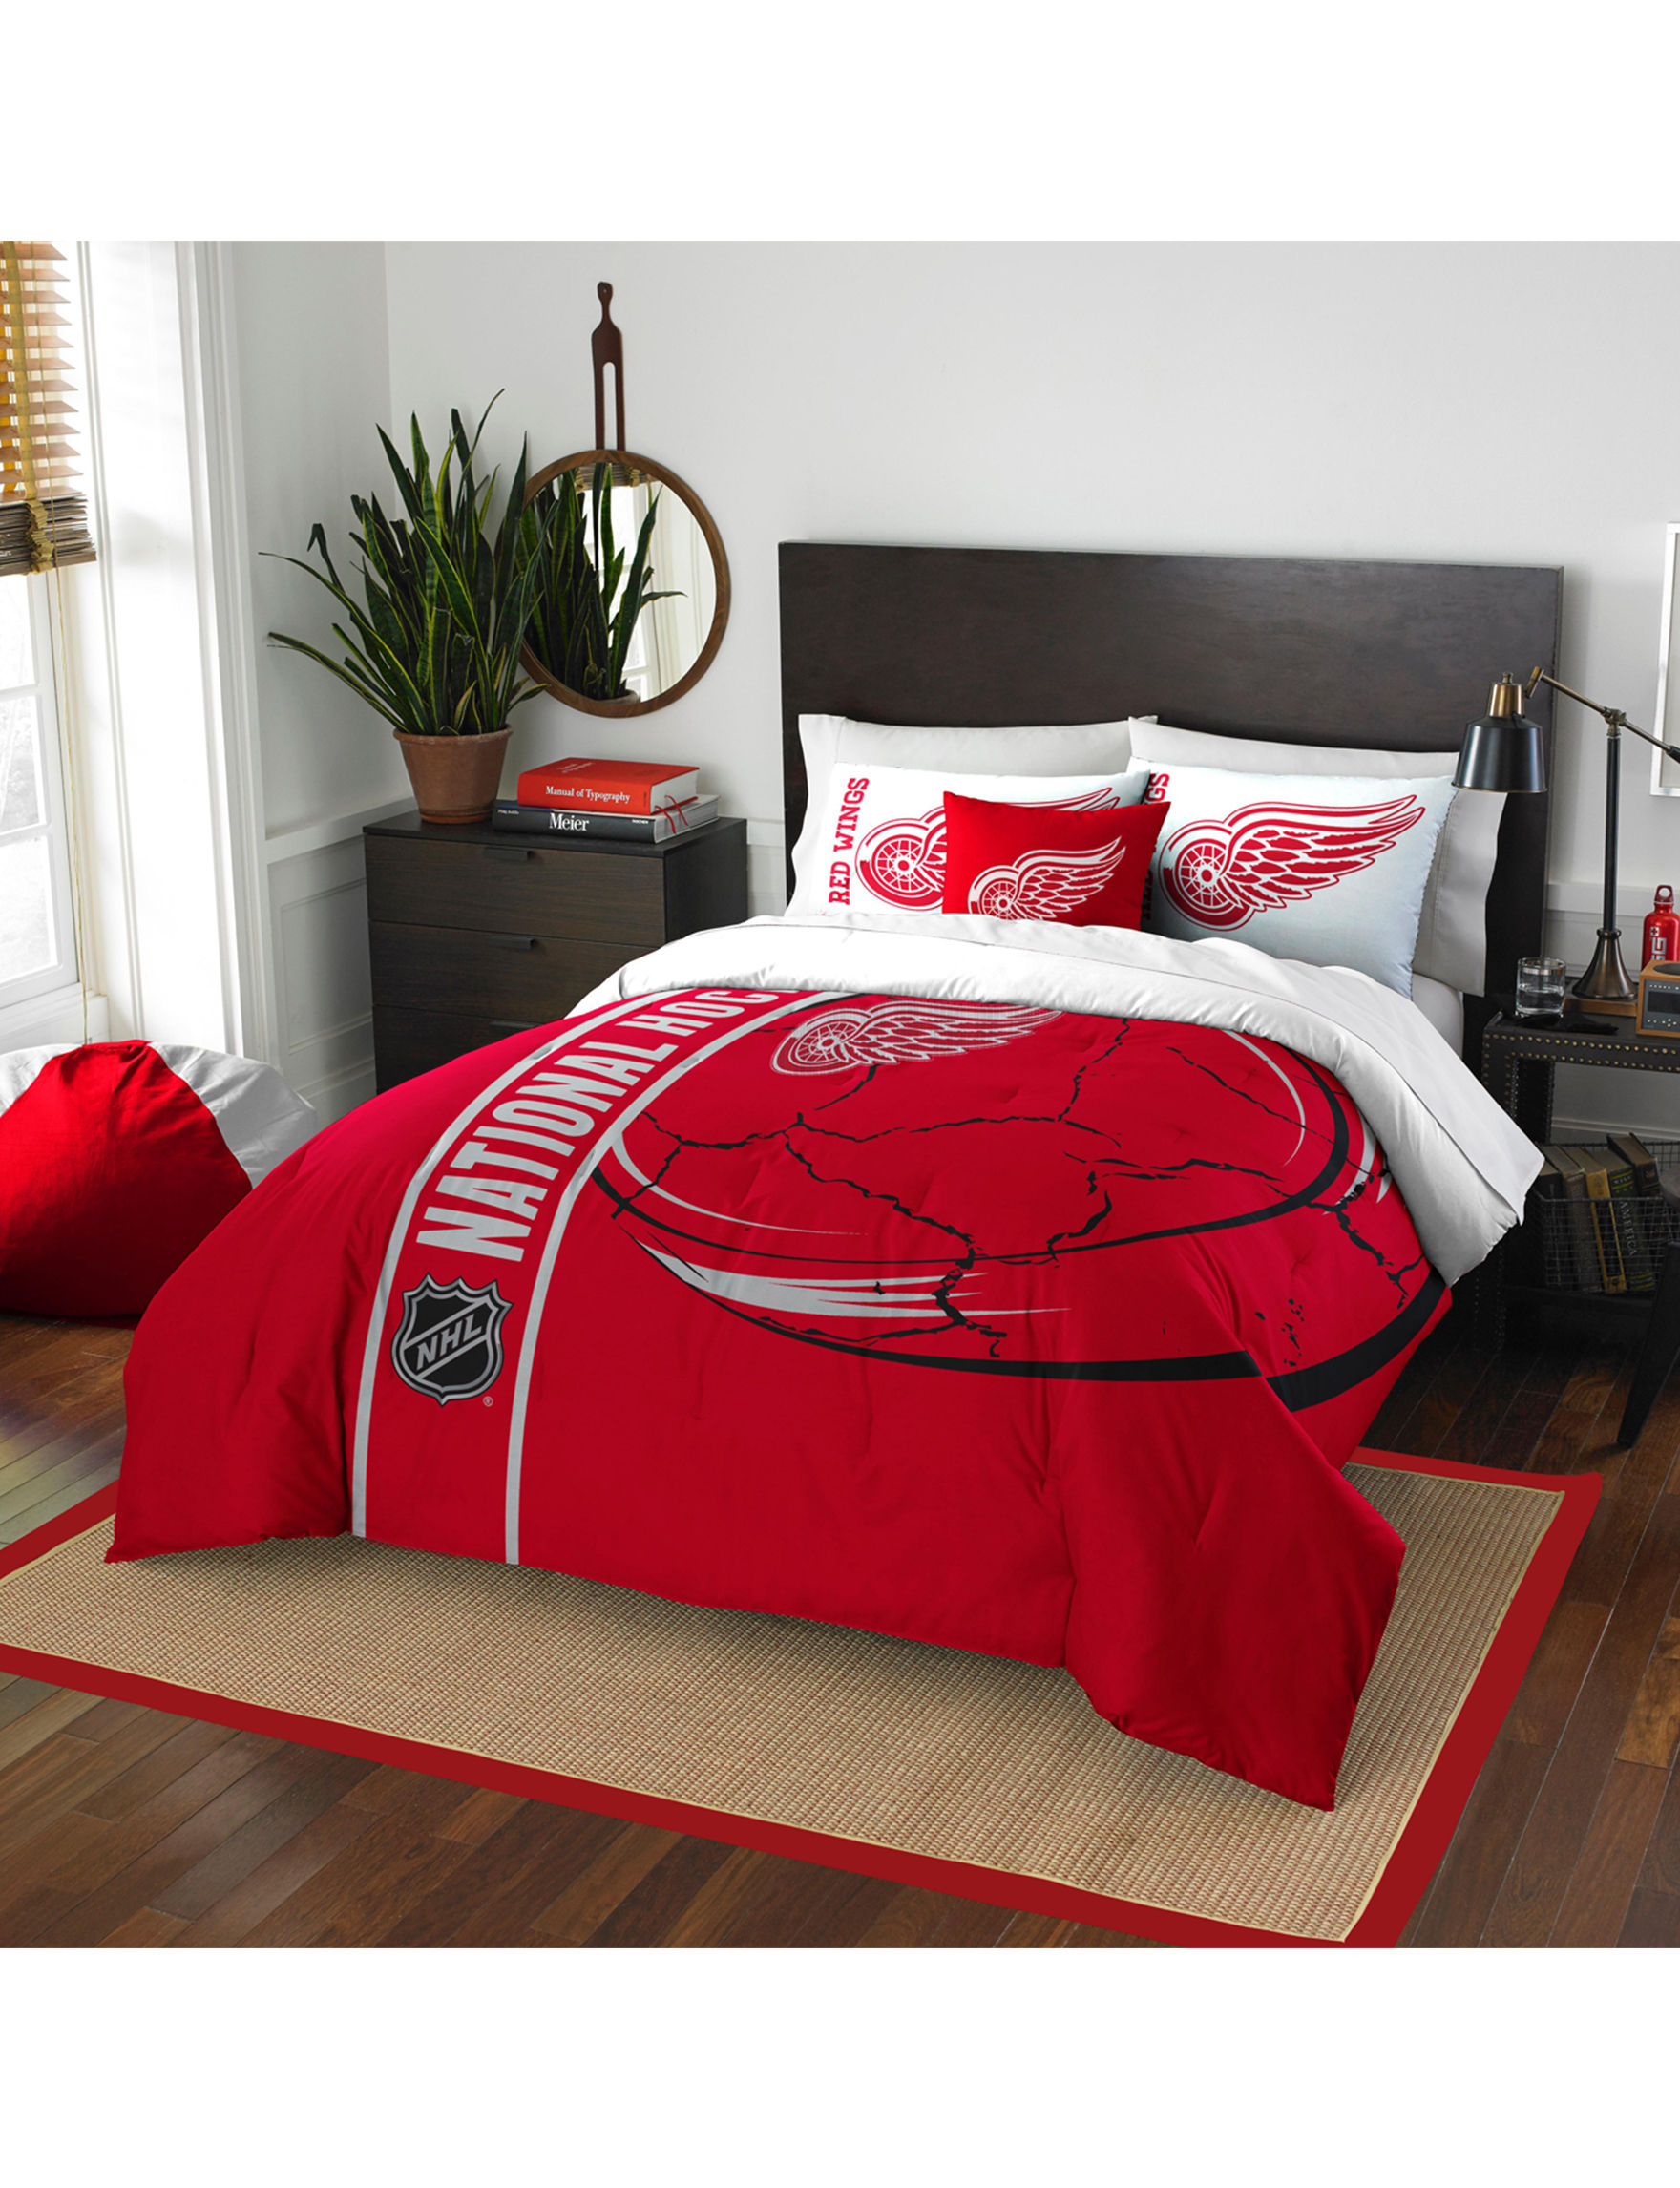 The Northwest Company Red / White Comforters & Comforter Sets